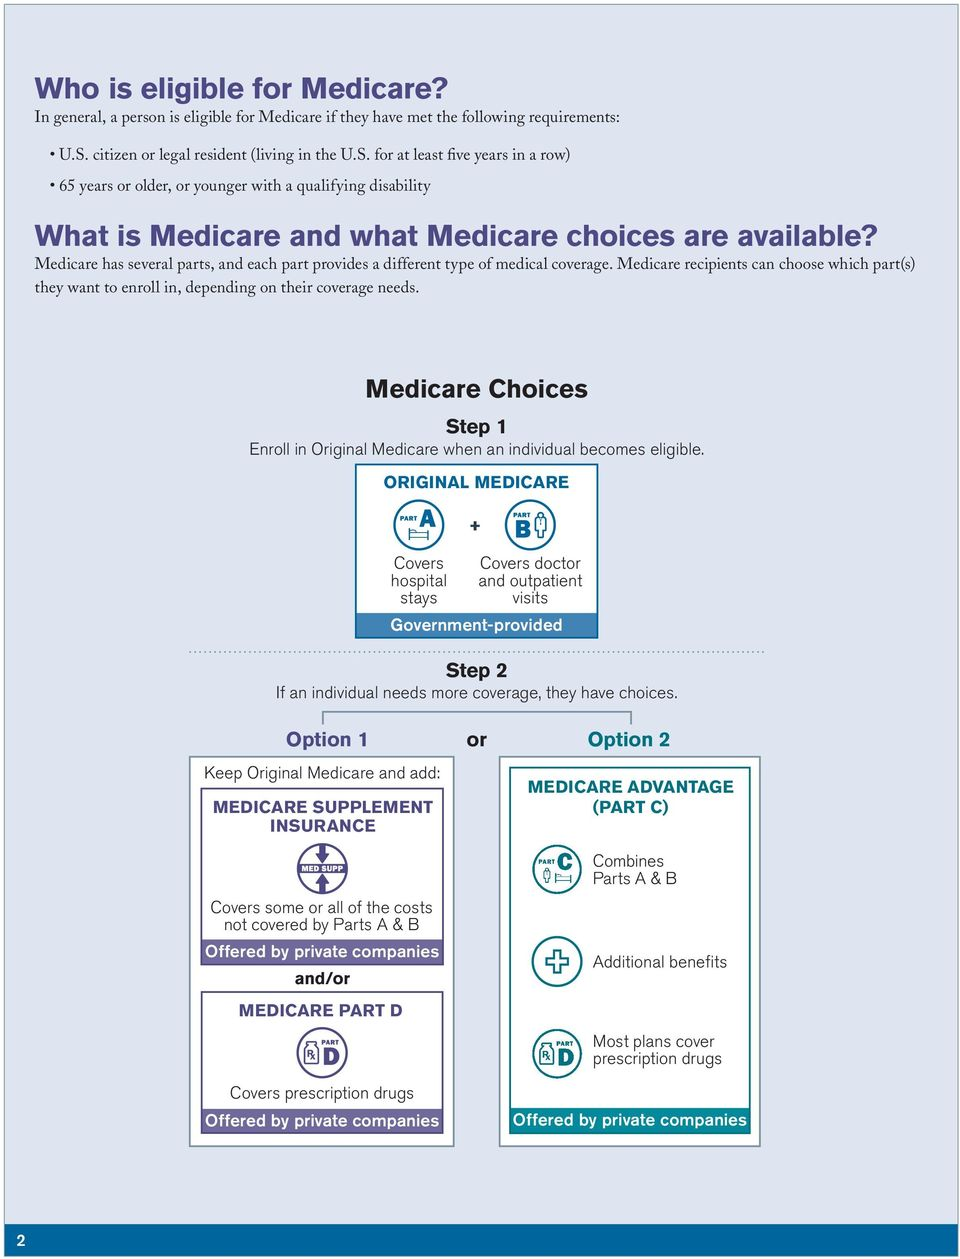 Medicare has several parts, and each part provides a different type of medical coverage. Medicare recipients can choose which part(s) they want to enroll in, depending on their coverage needs.